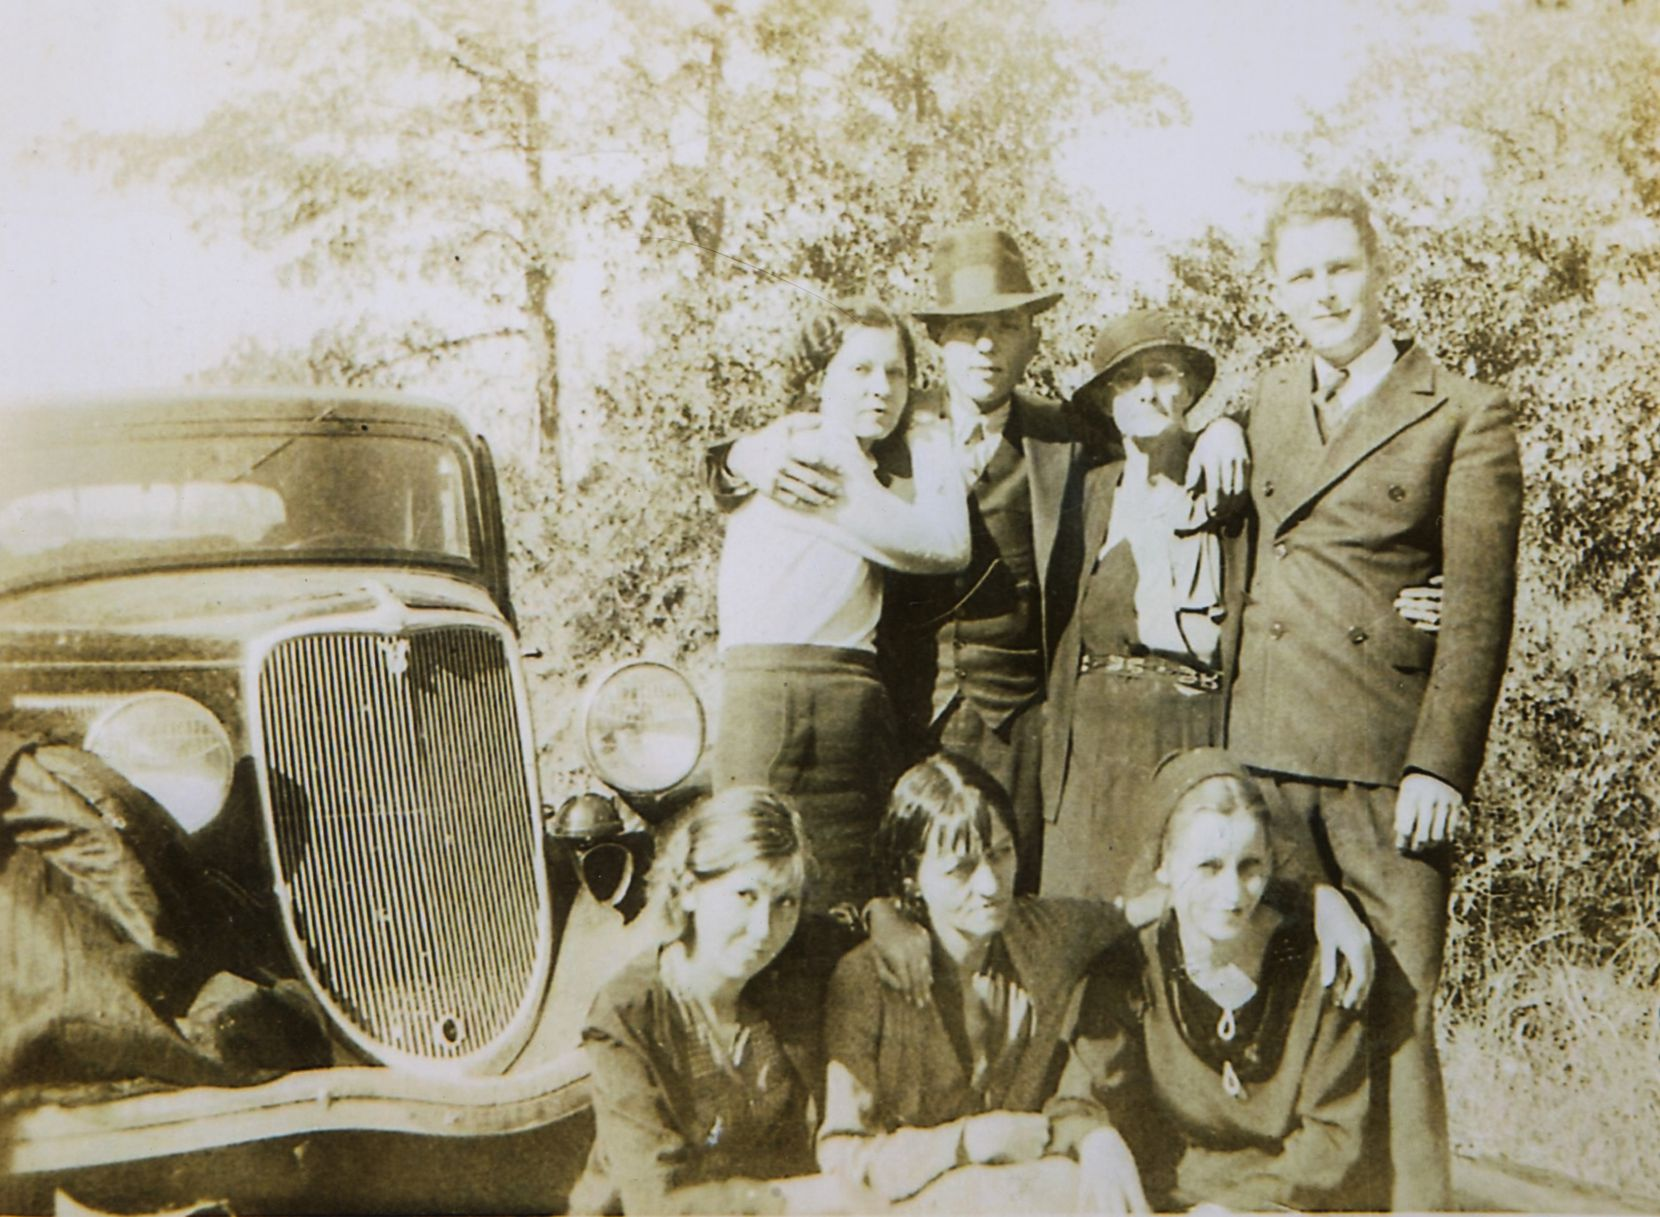 A Barrow family gathering in West Dallas in the Trinity River bottom. Clyde Barrow is second from the left in the top row. (Photo: Buddy Barrow)